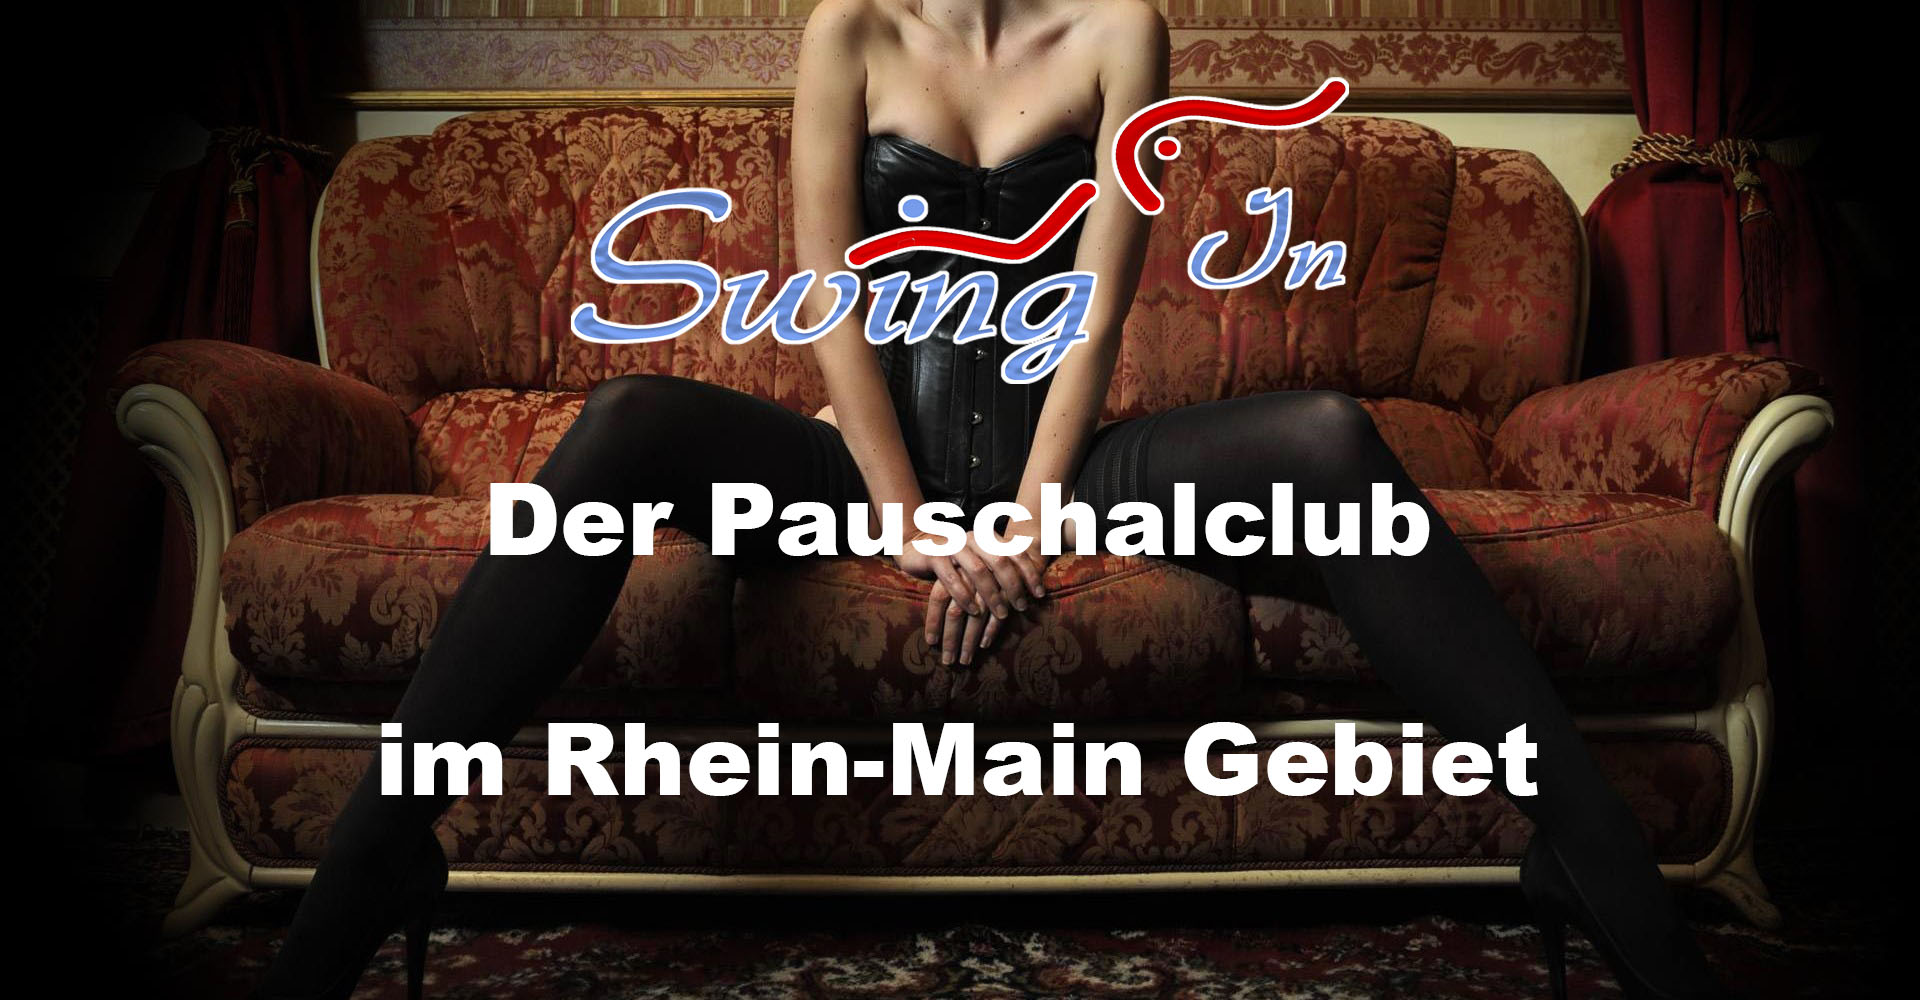 swing in rodgau sex chet